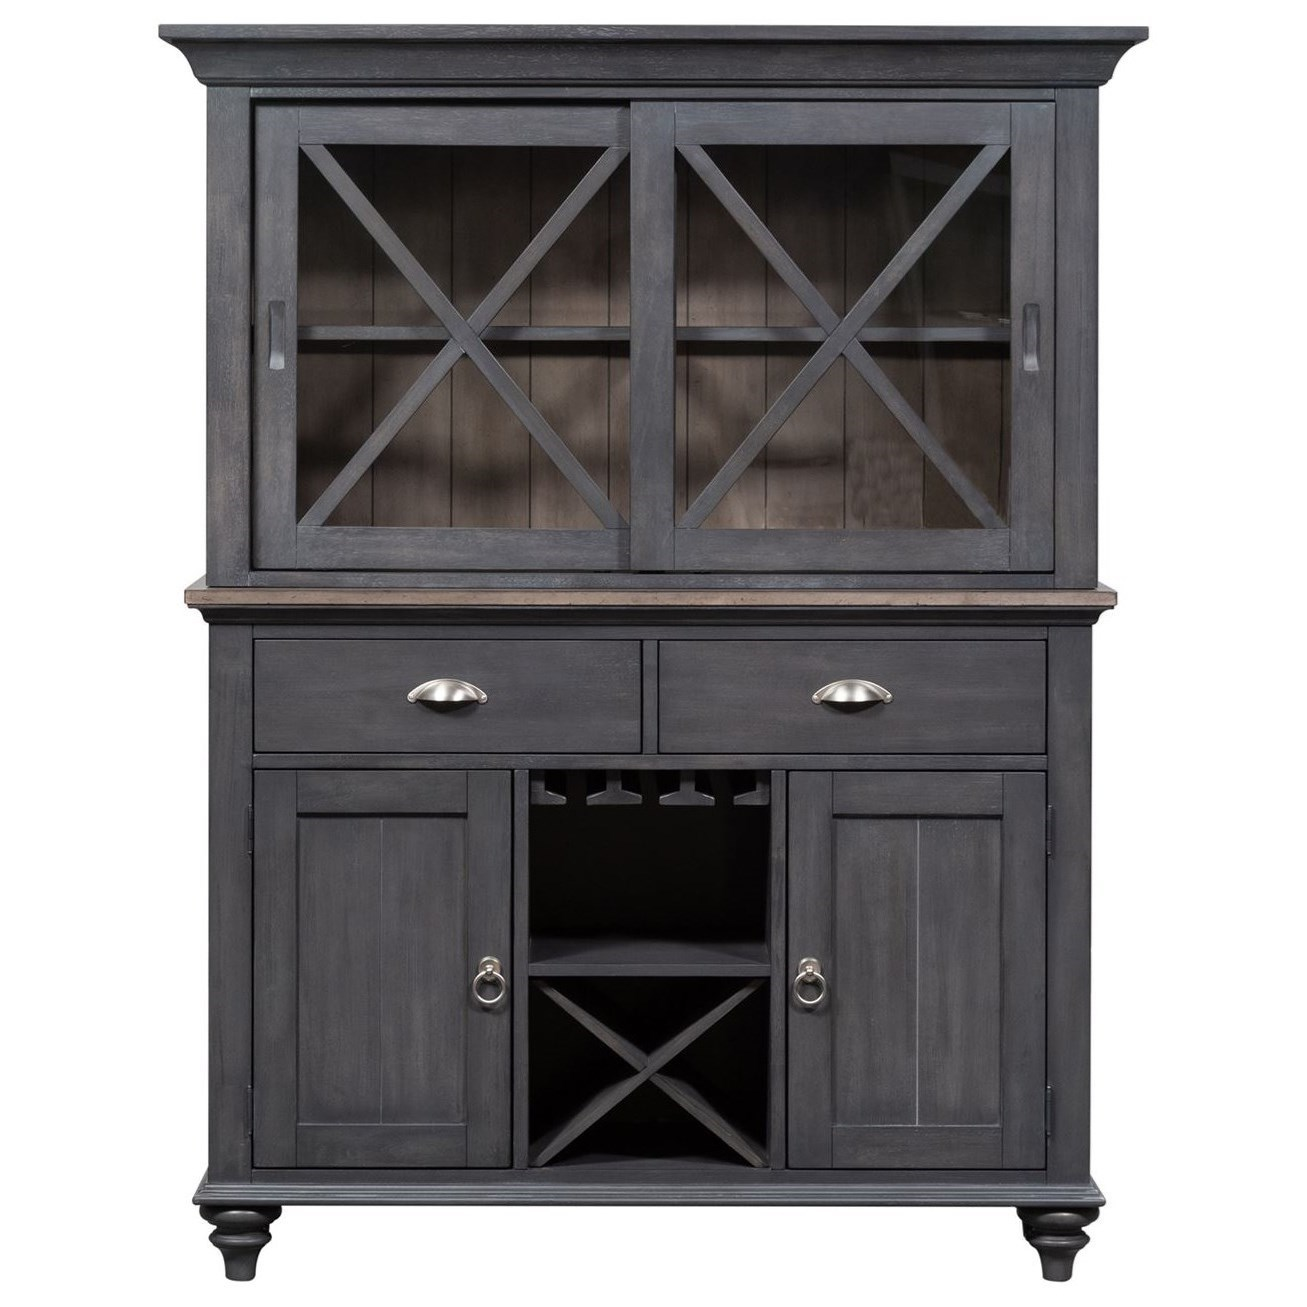 Cottage Style Hutch and Buffet with Touch Lighting